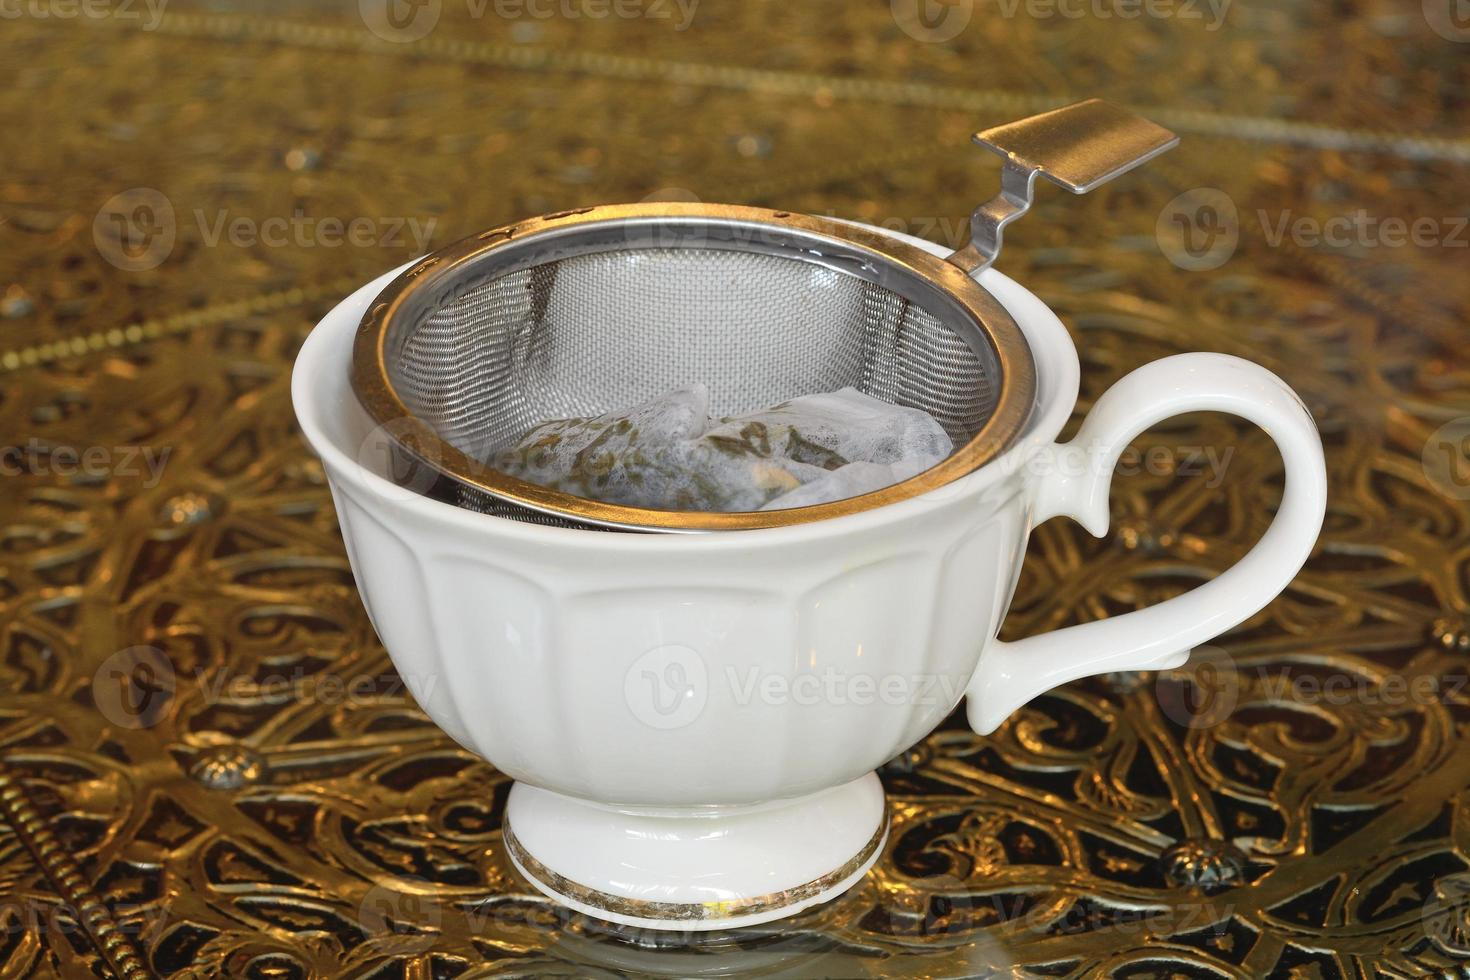 Vintage tea strainer and tea ready in cup photo